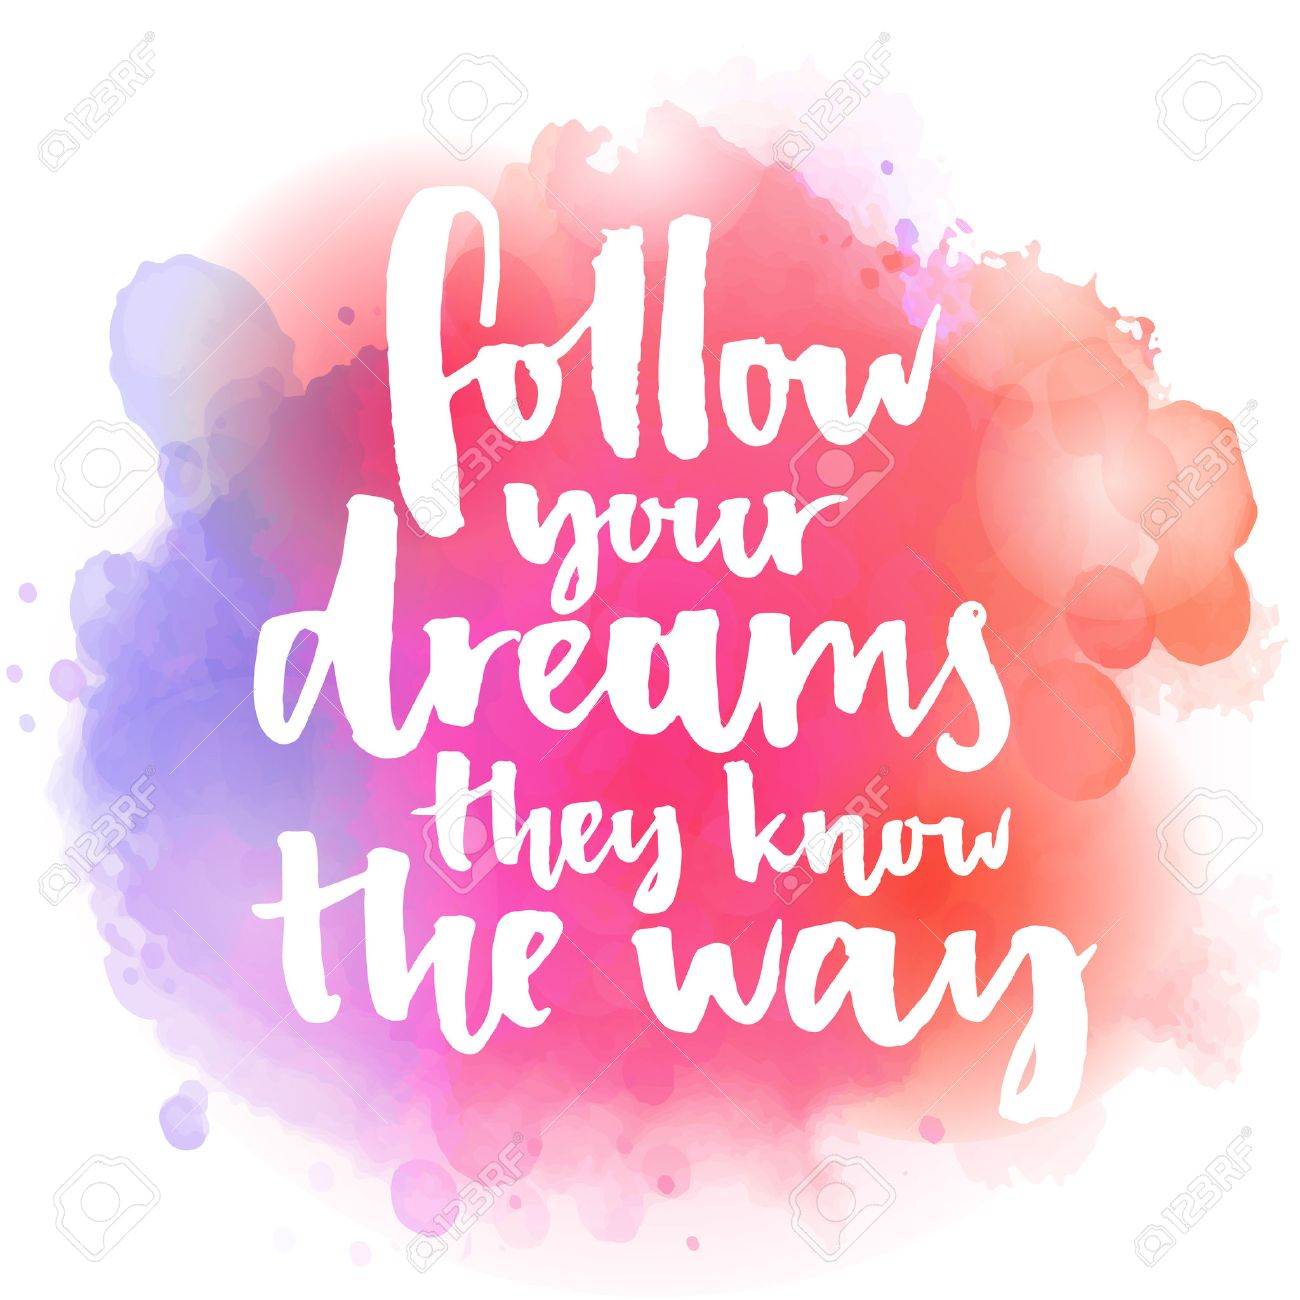 Follow your dreams, they know the way. Inspirational quote about life and love. Modern calligraphy text, handwritten with brush on pink and orange watercolor splash background with bokehs. - 48604350